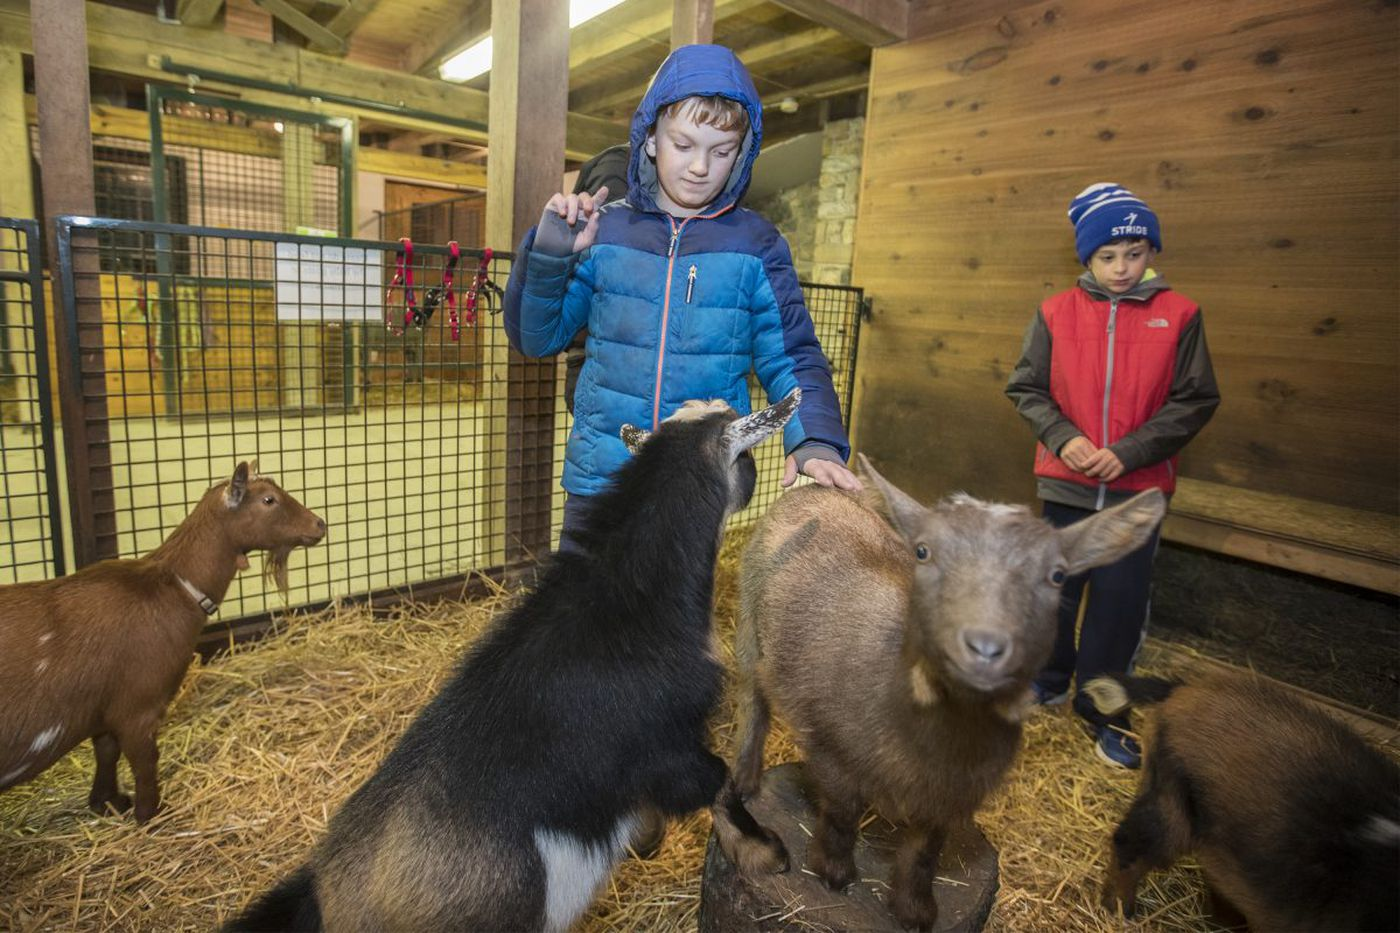 New research is finding animals may help kids on the autism spectrum relate to other people